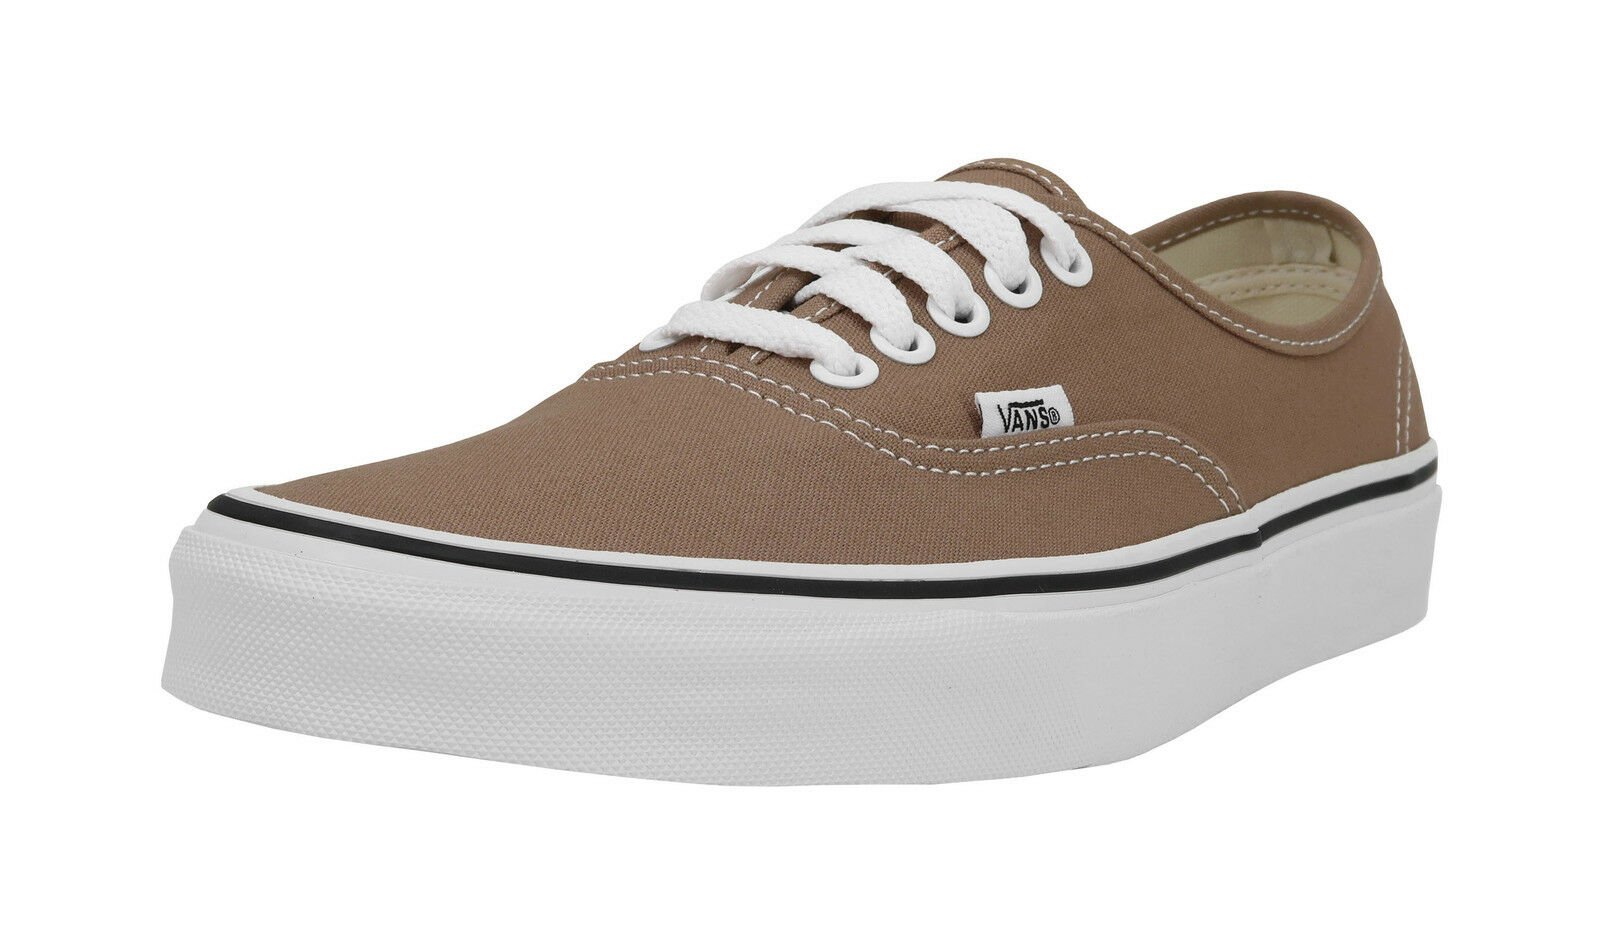 Vans Shoes Authentic Men Women Tigers Eye/True White Sneakers Light Beige